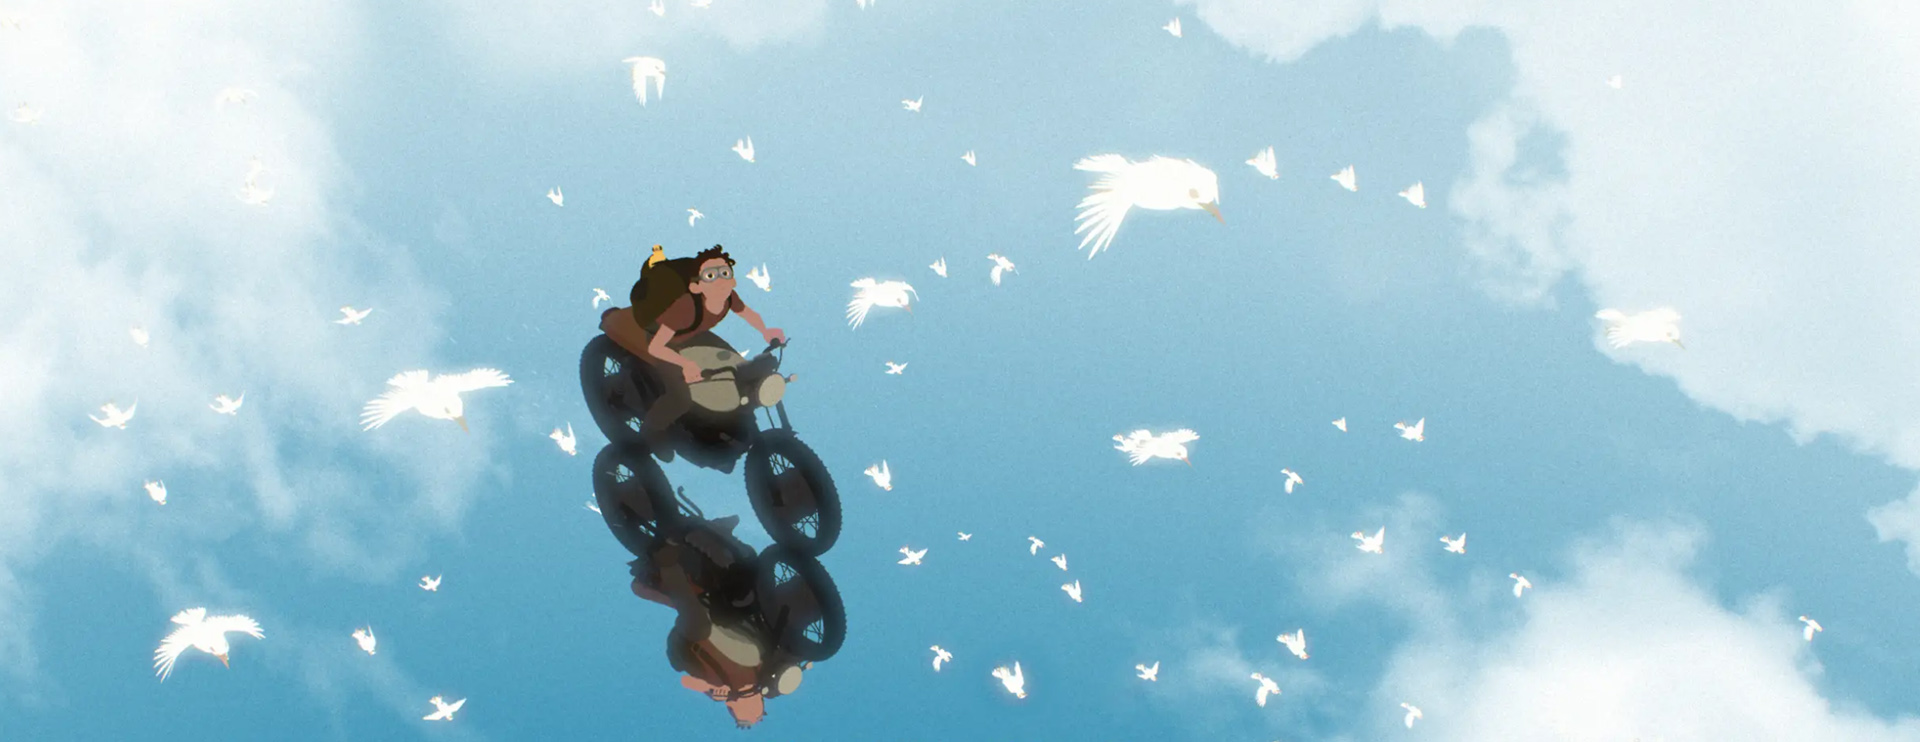 Away by Gints Zilbalodis. Click through to watch the trailer for the animation short.